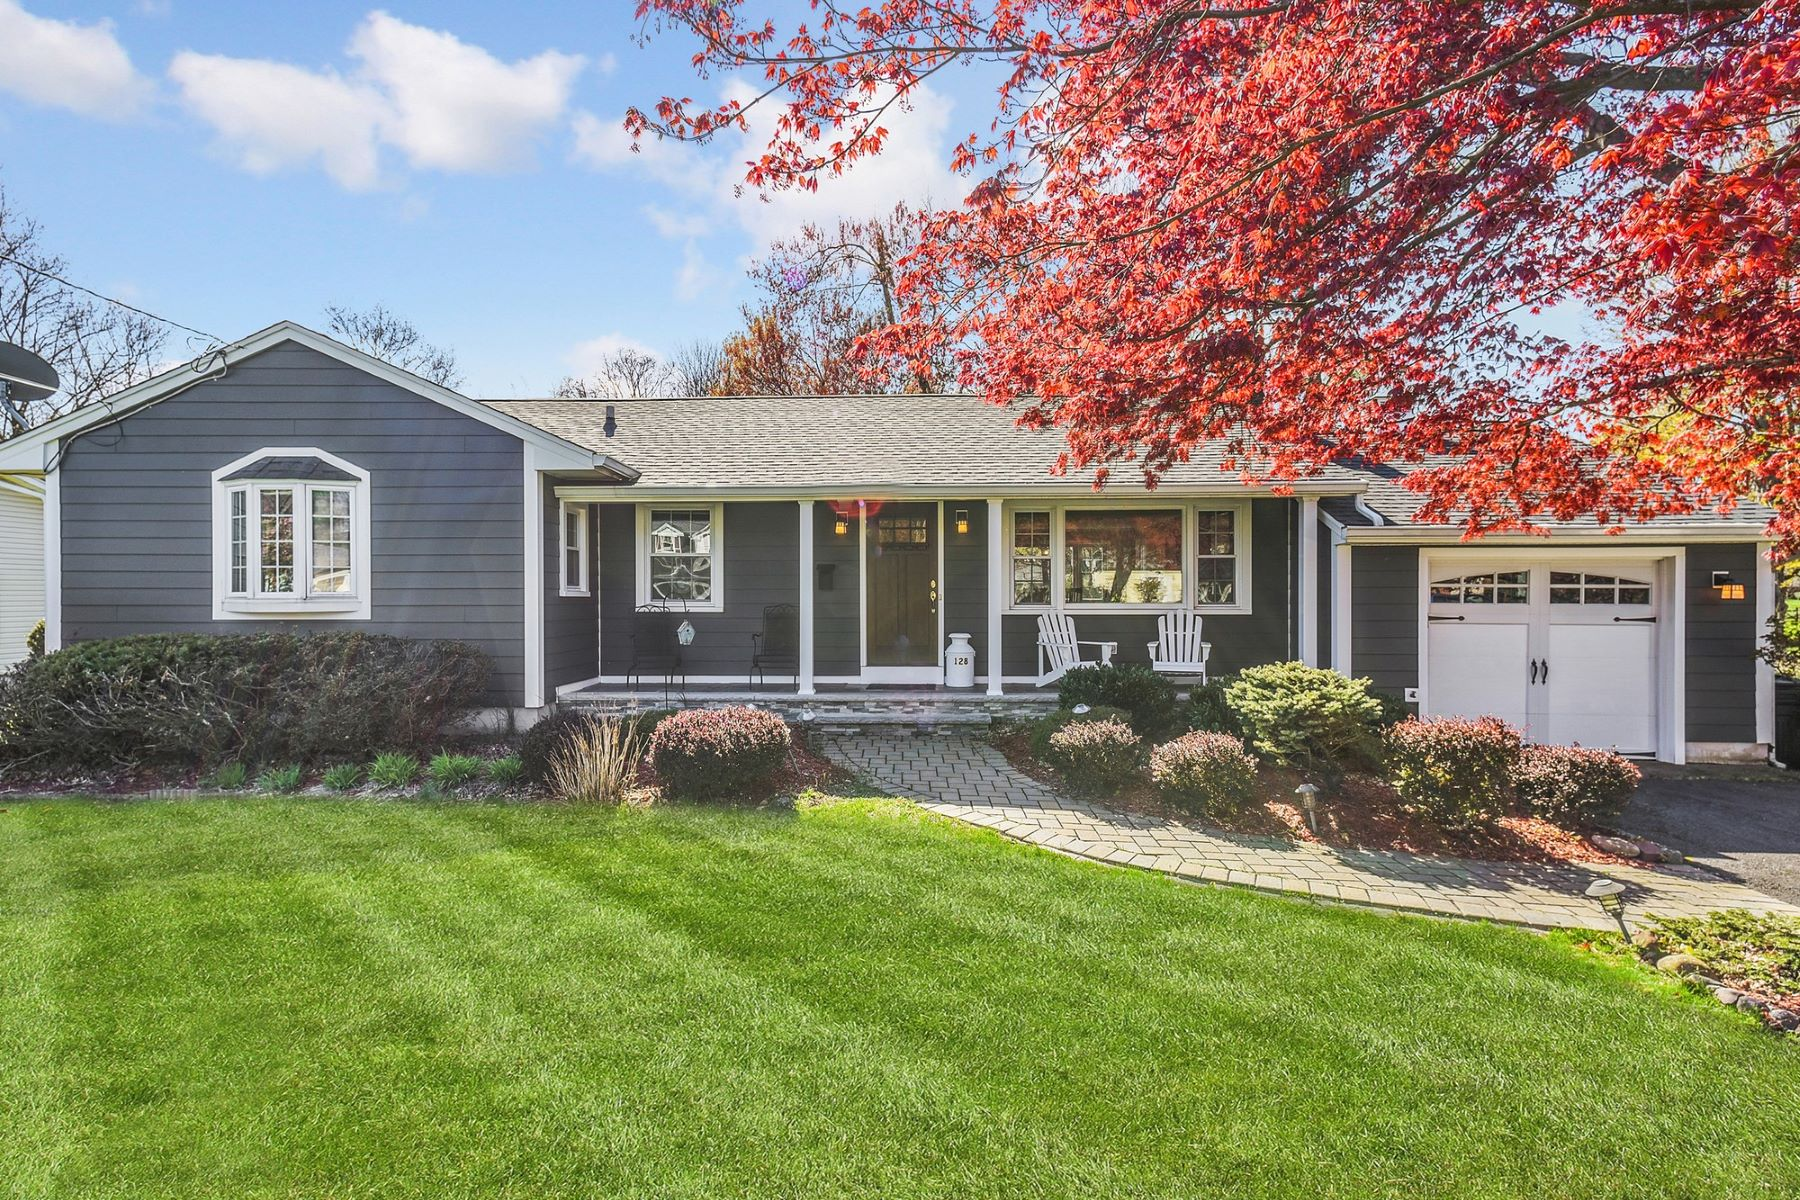 Single Family Homes for Sale at Renovated Ranch 128 Mountain Way Morris Plains, New Jersey 07950 United States